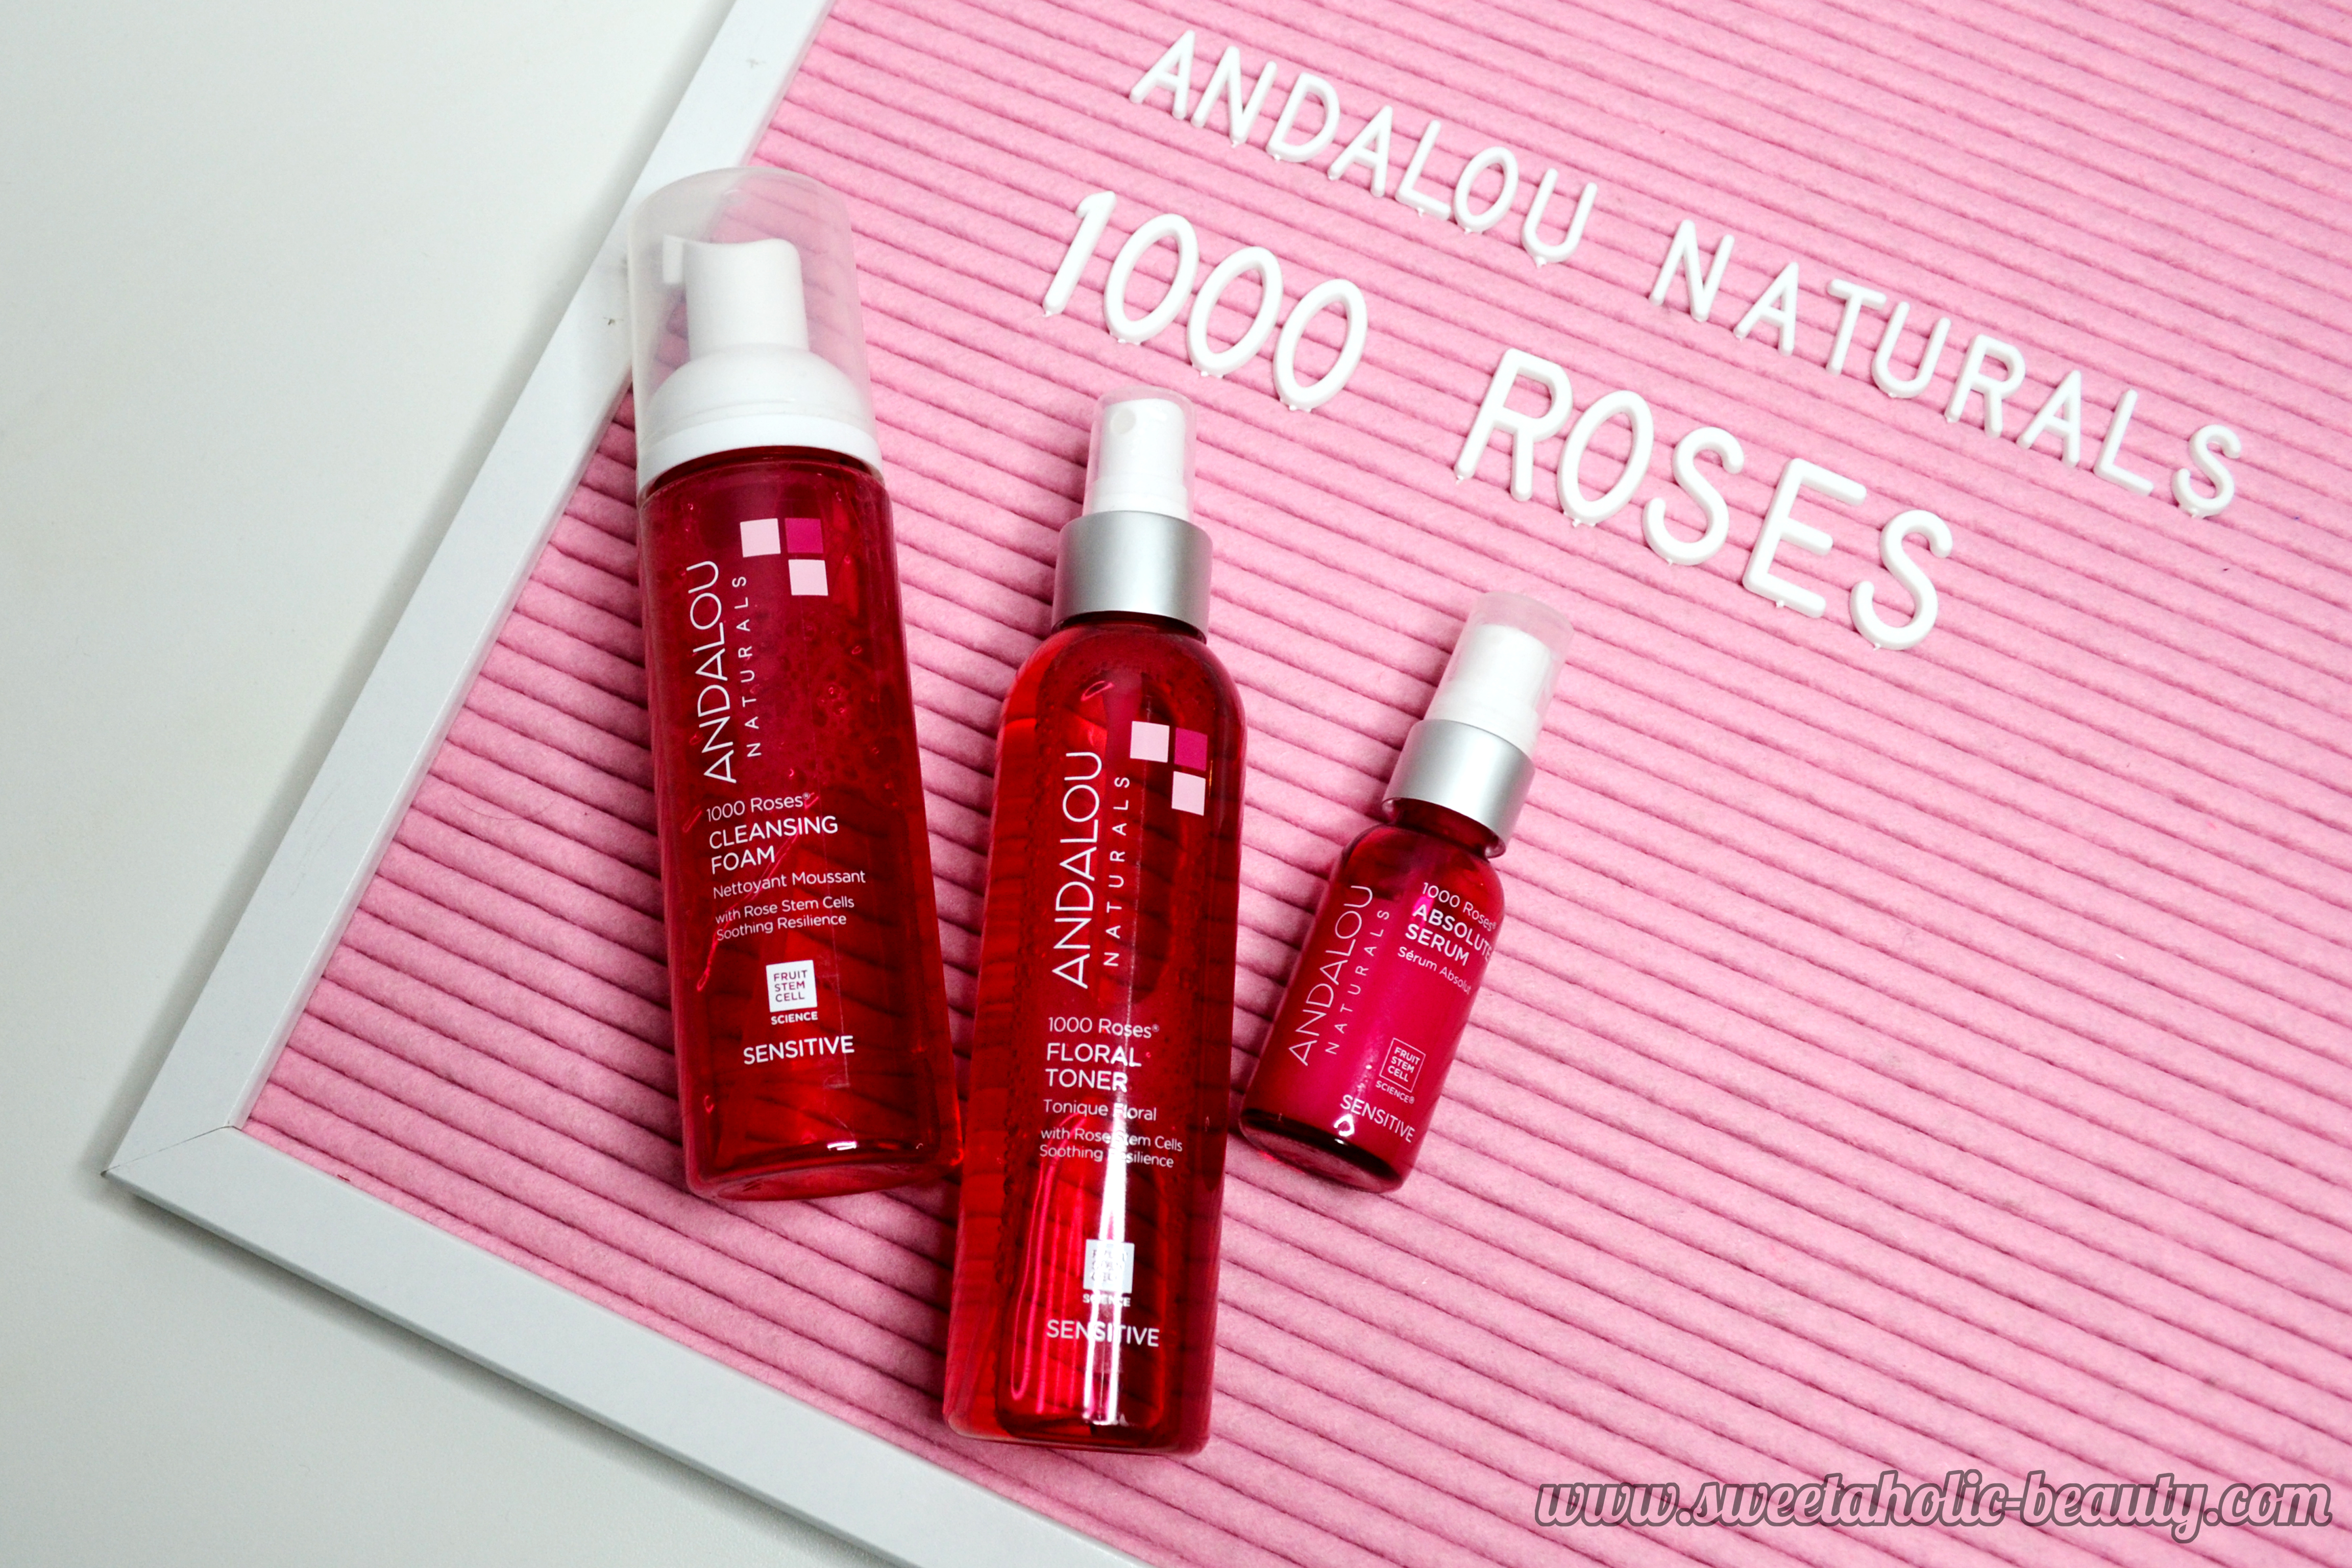 Andalou Naturals 1000 Roses Range - Full Review - Sweetaholic Beauty